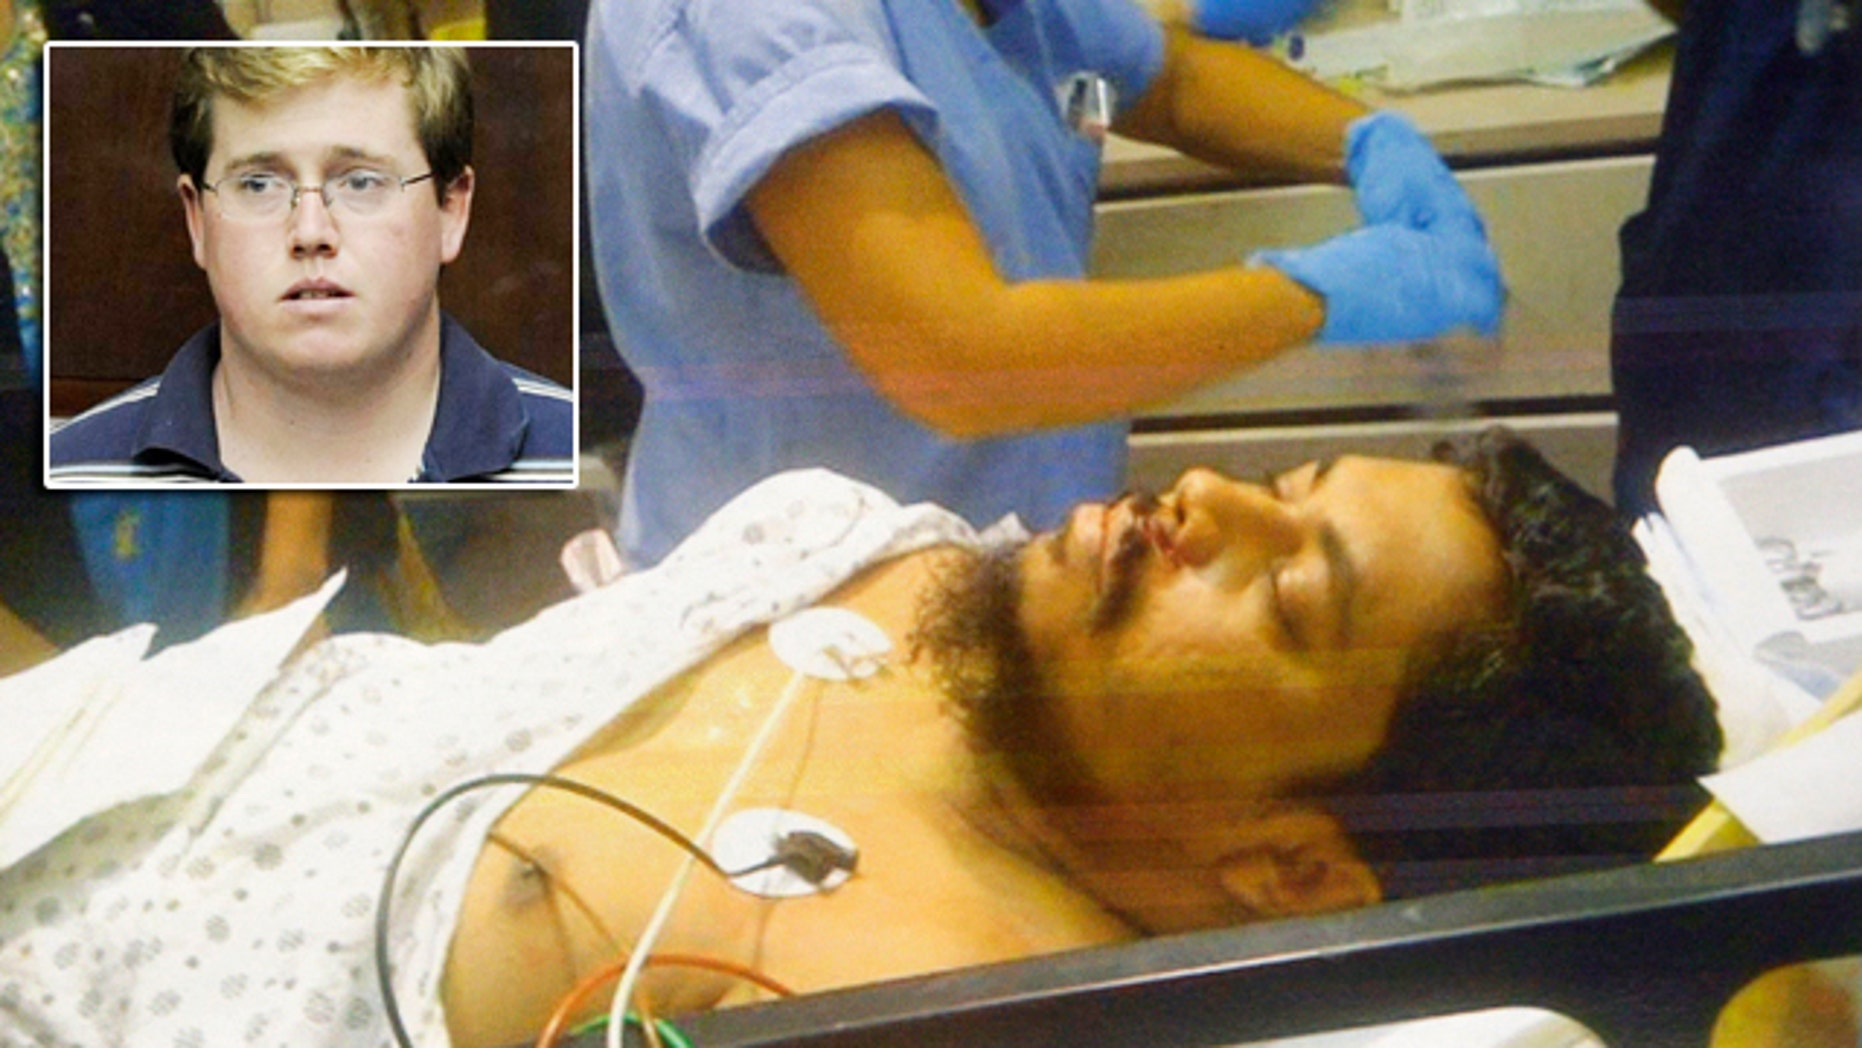 Michael Enright, inset, is accused of attempted murder as a hate crime in the stabbing of Ahmed Sharif, a New York City taxi driver.